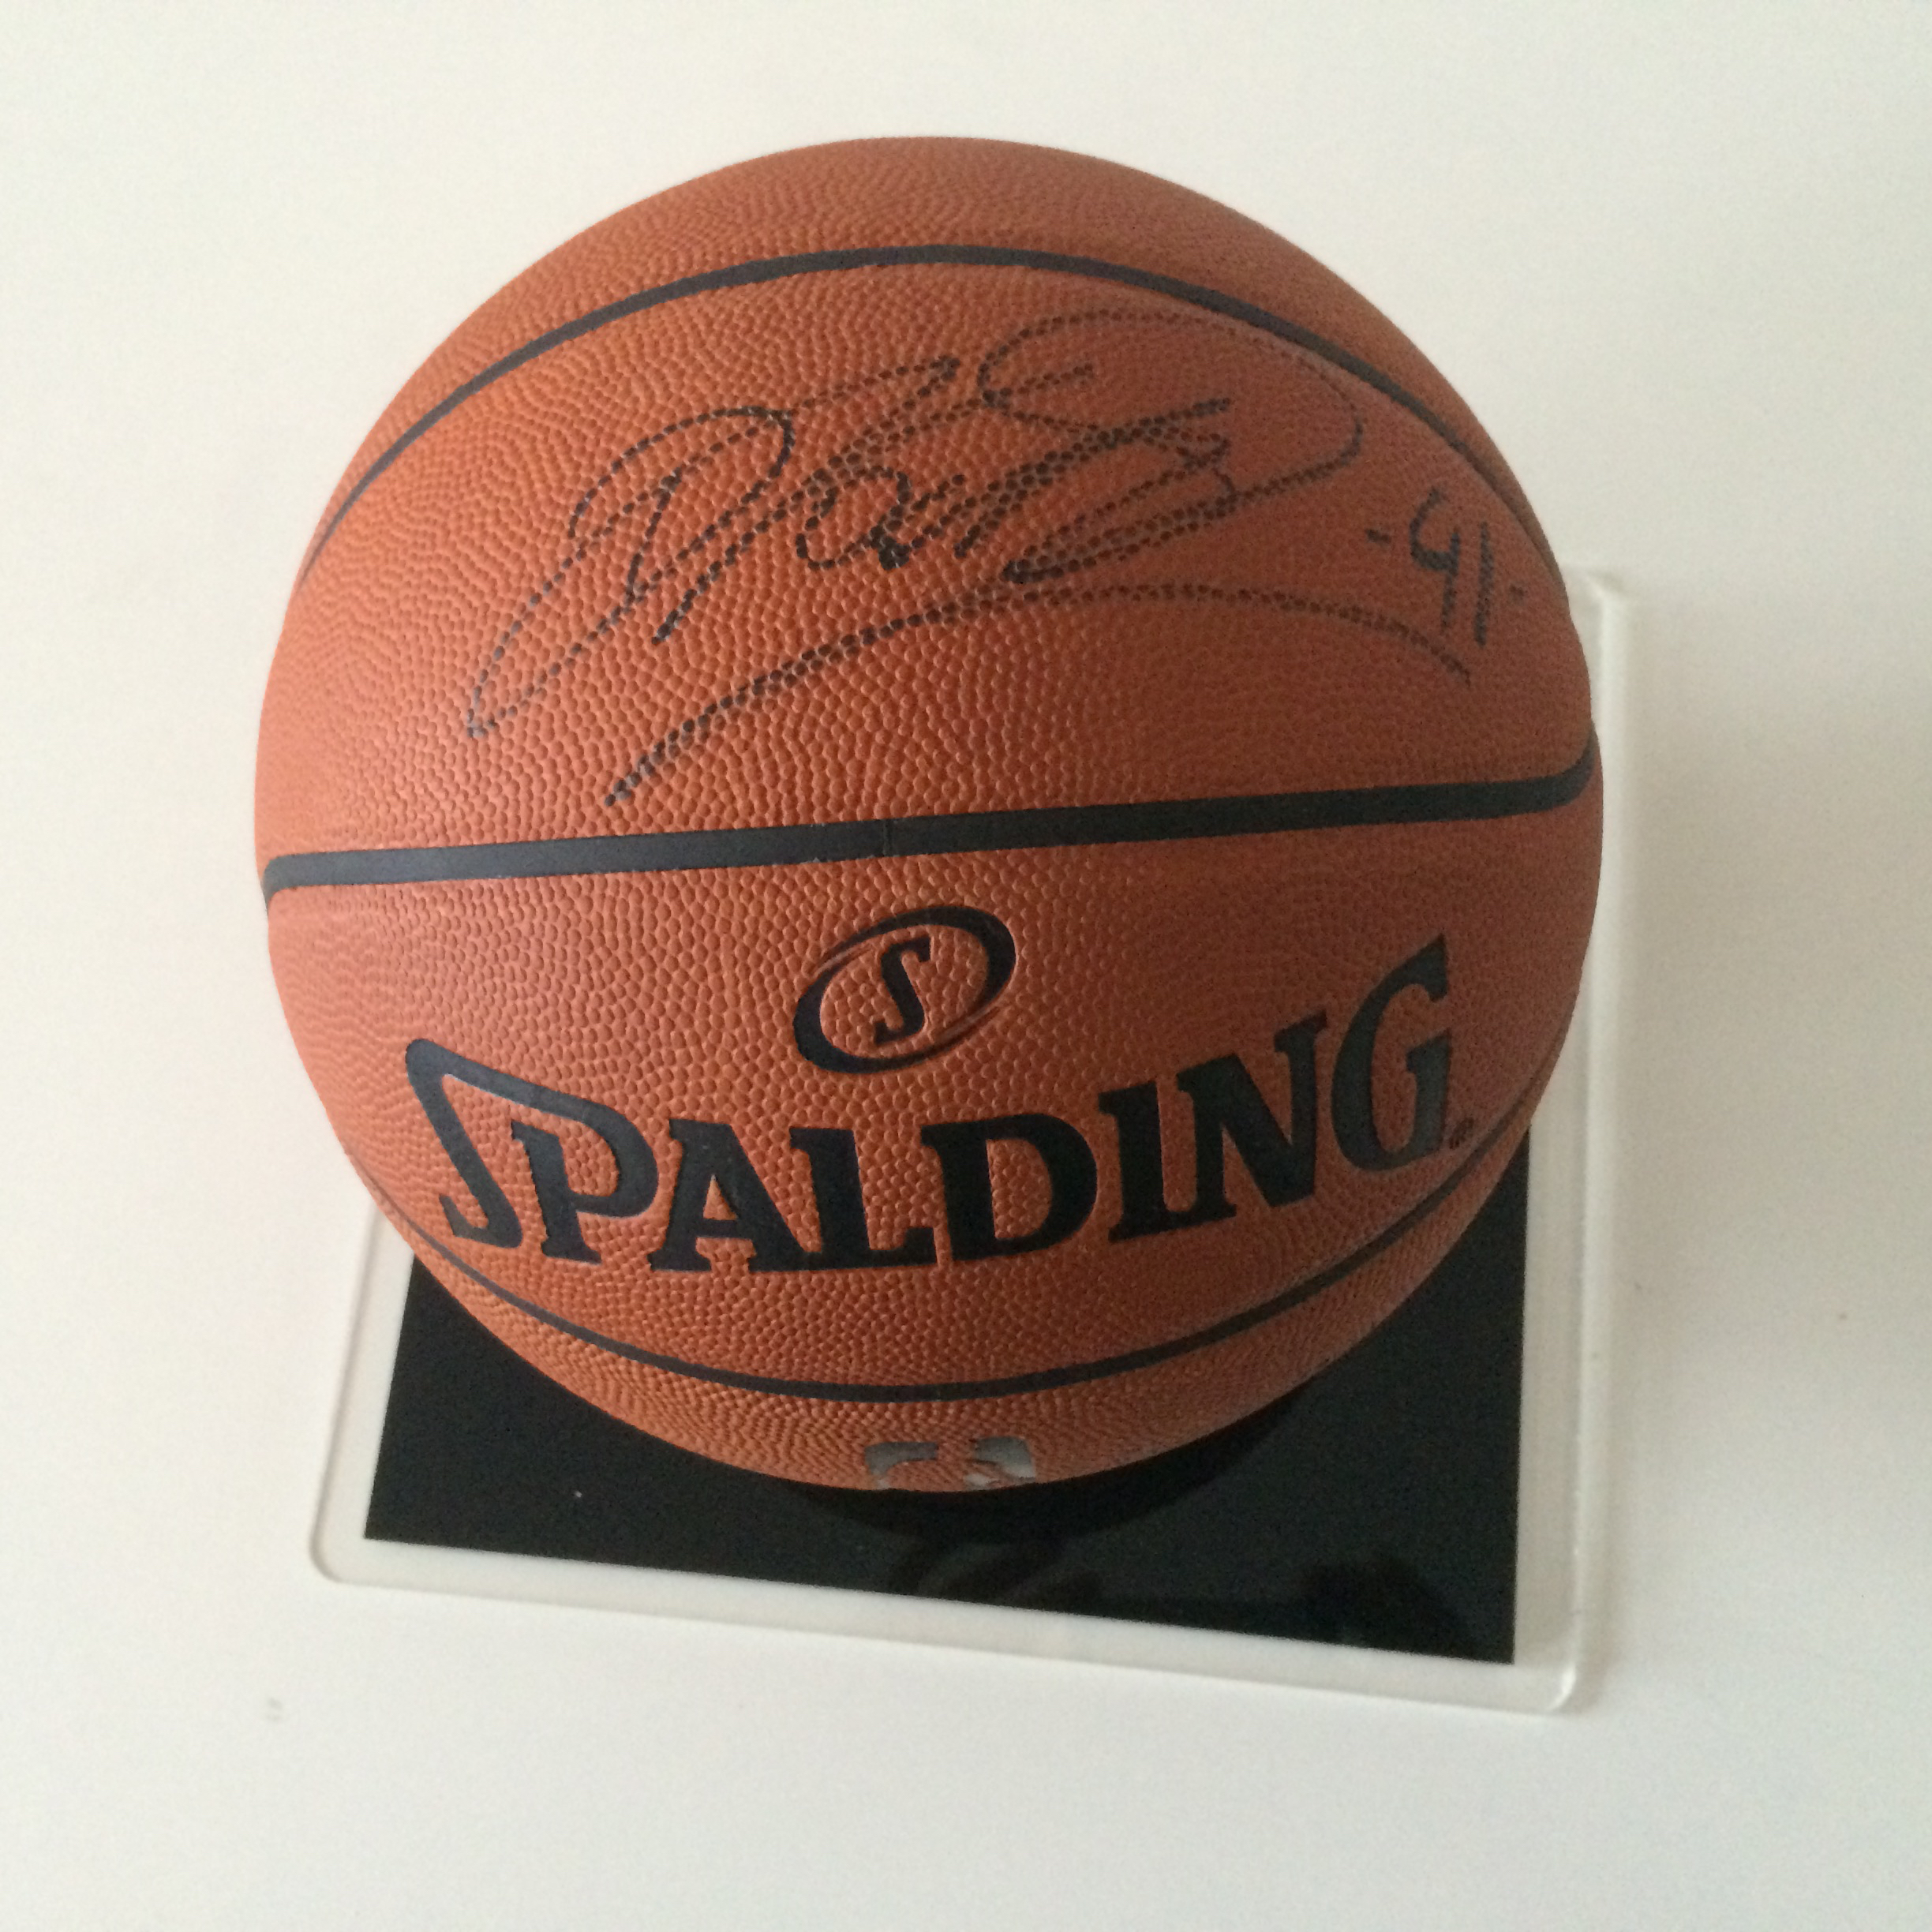 Nowitzki Ball.jpg